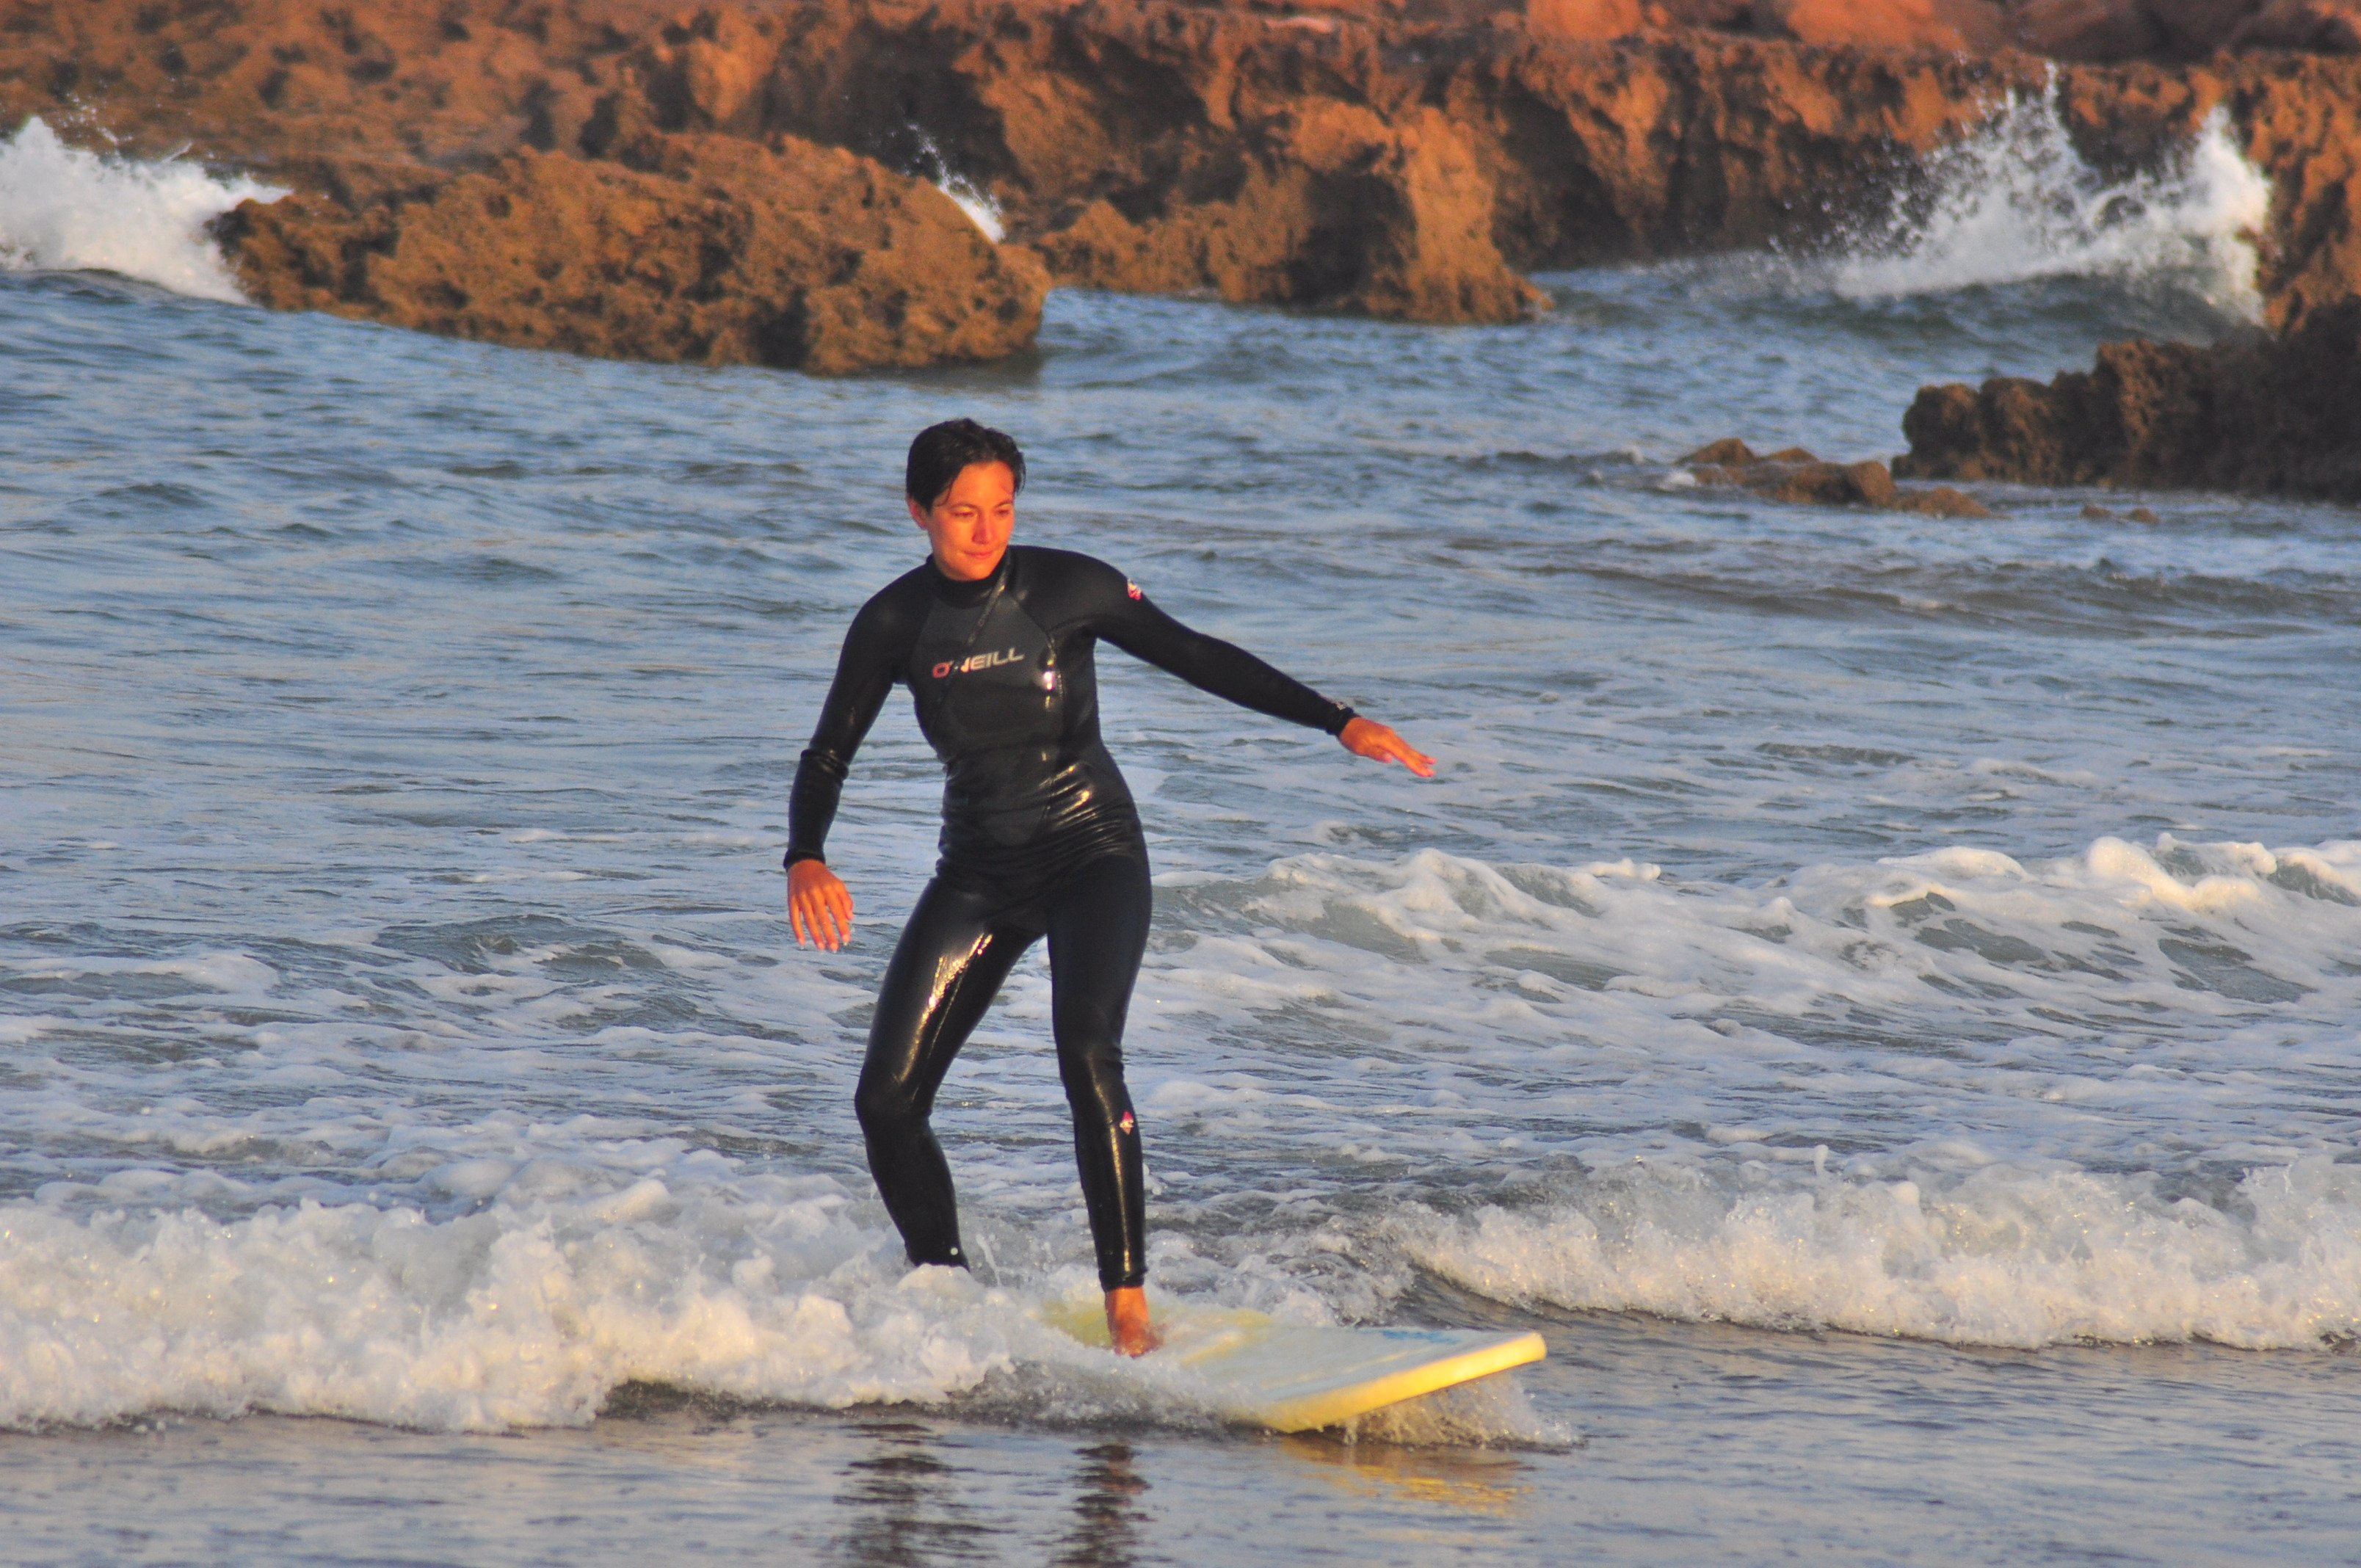 beginner surfer morocco